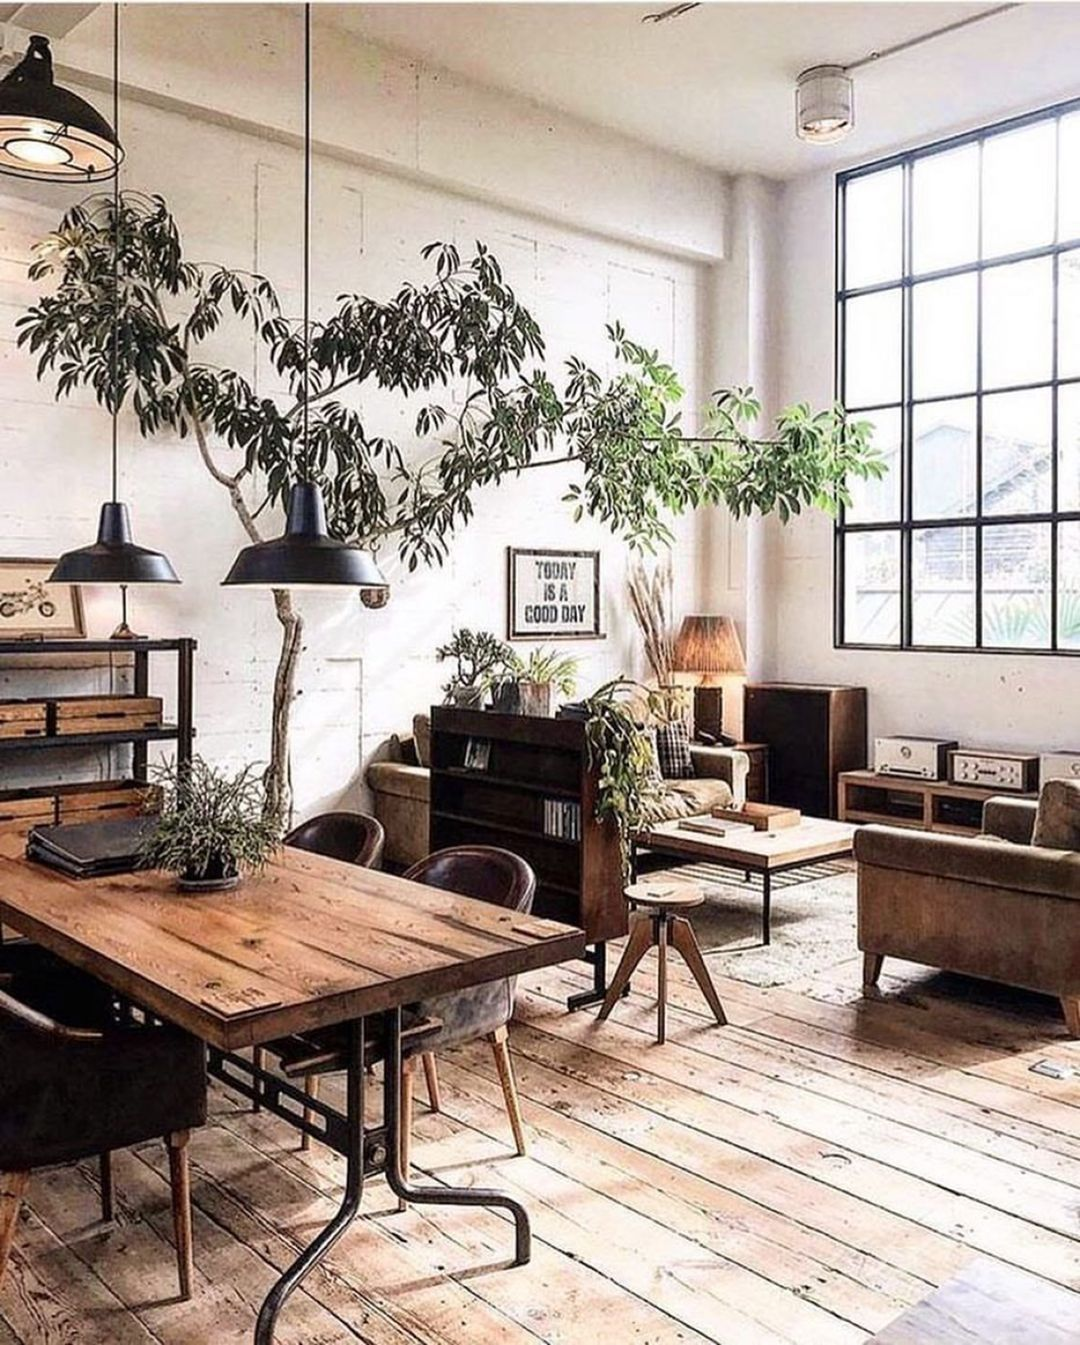 30 Cozy Industrial Living Room Design Ideas That Will Amaze Your Guests Industrial Decor Living Room Industrial Living Room Design Minimalist Living Room